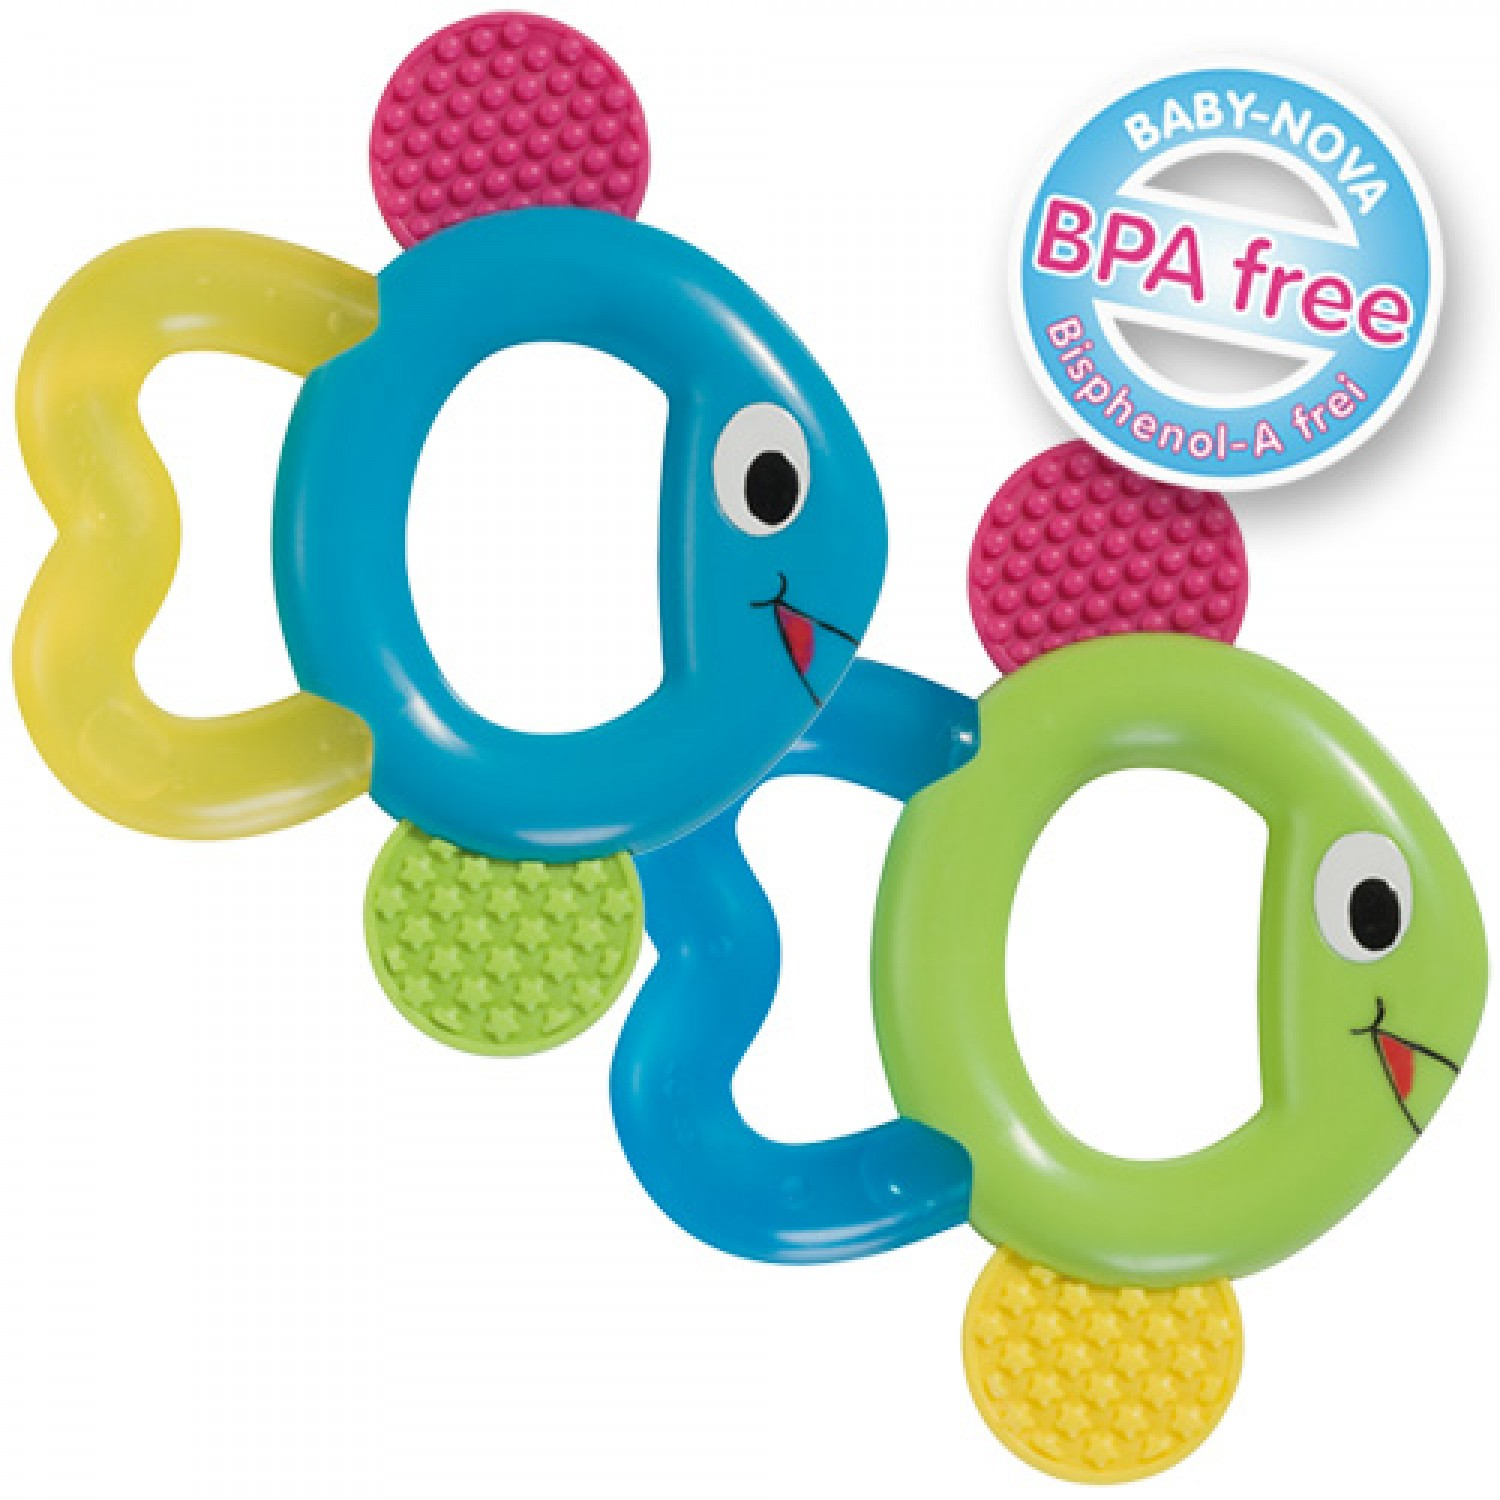 Cooling Teether Fish – Teething Aid 2 colours | Baby Nova